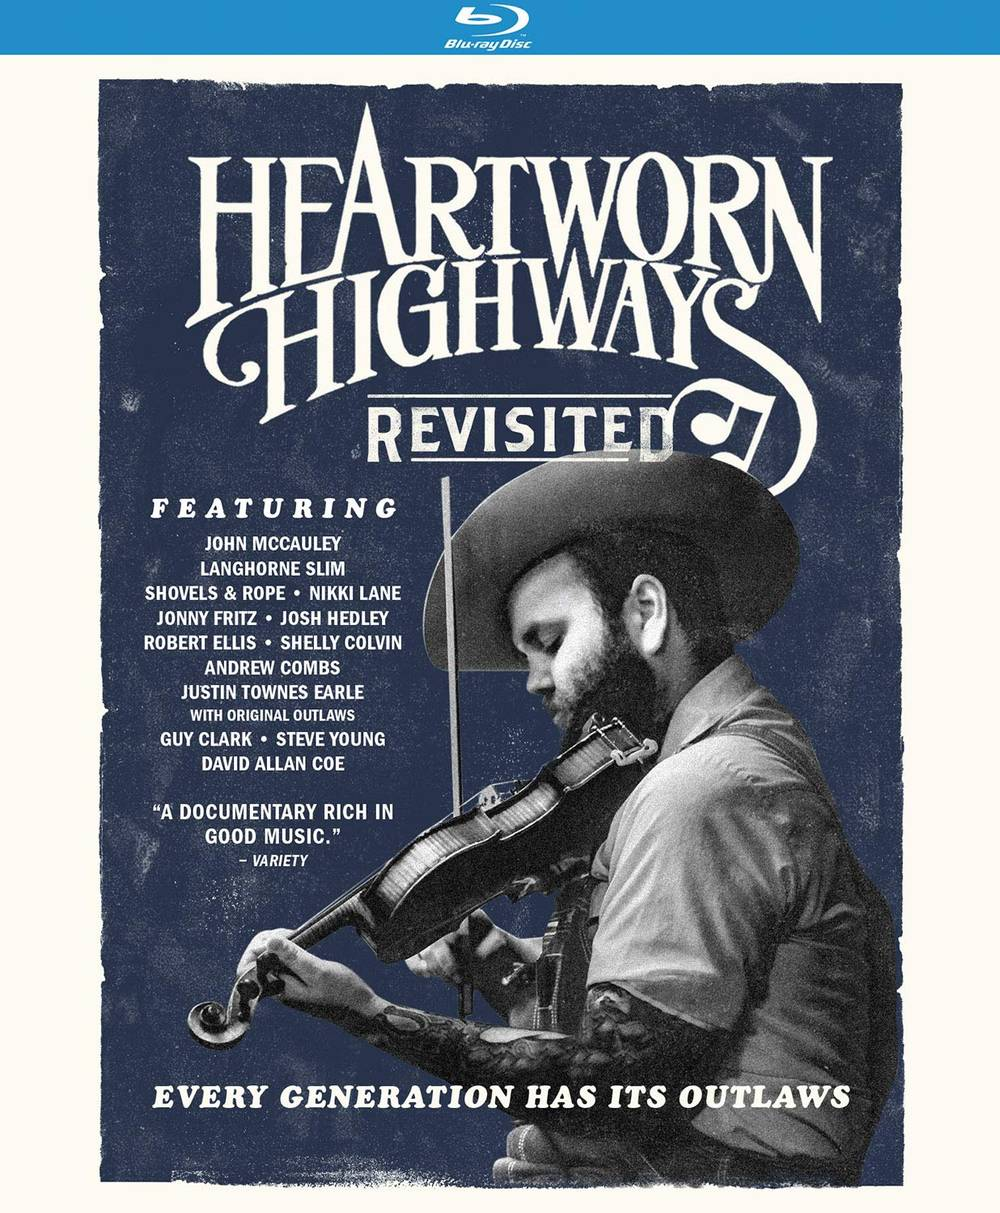 Heartworn Highways [Movie] - Heartworn Highways Revisited